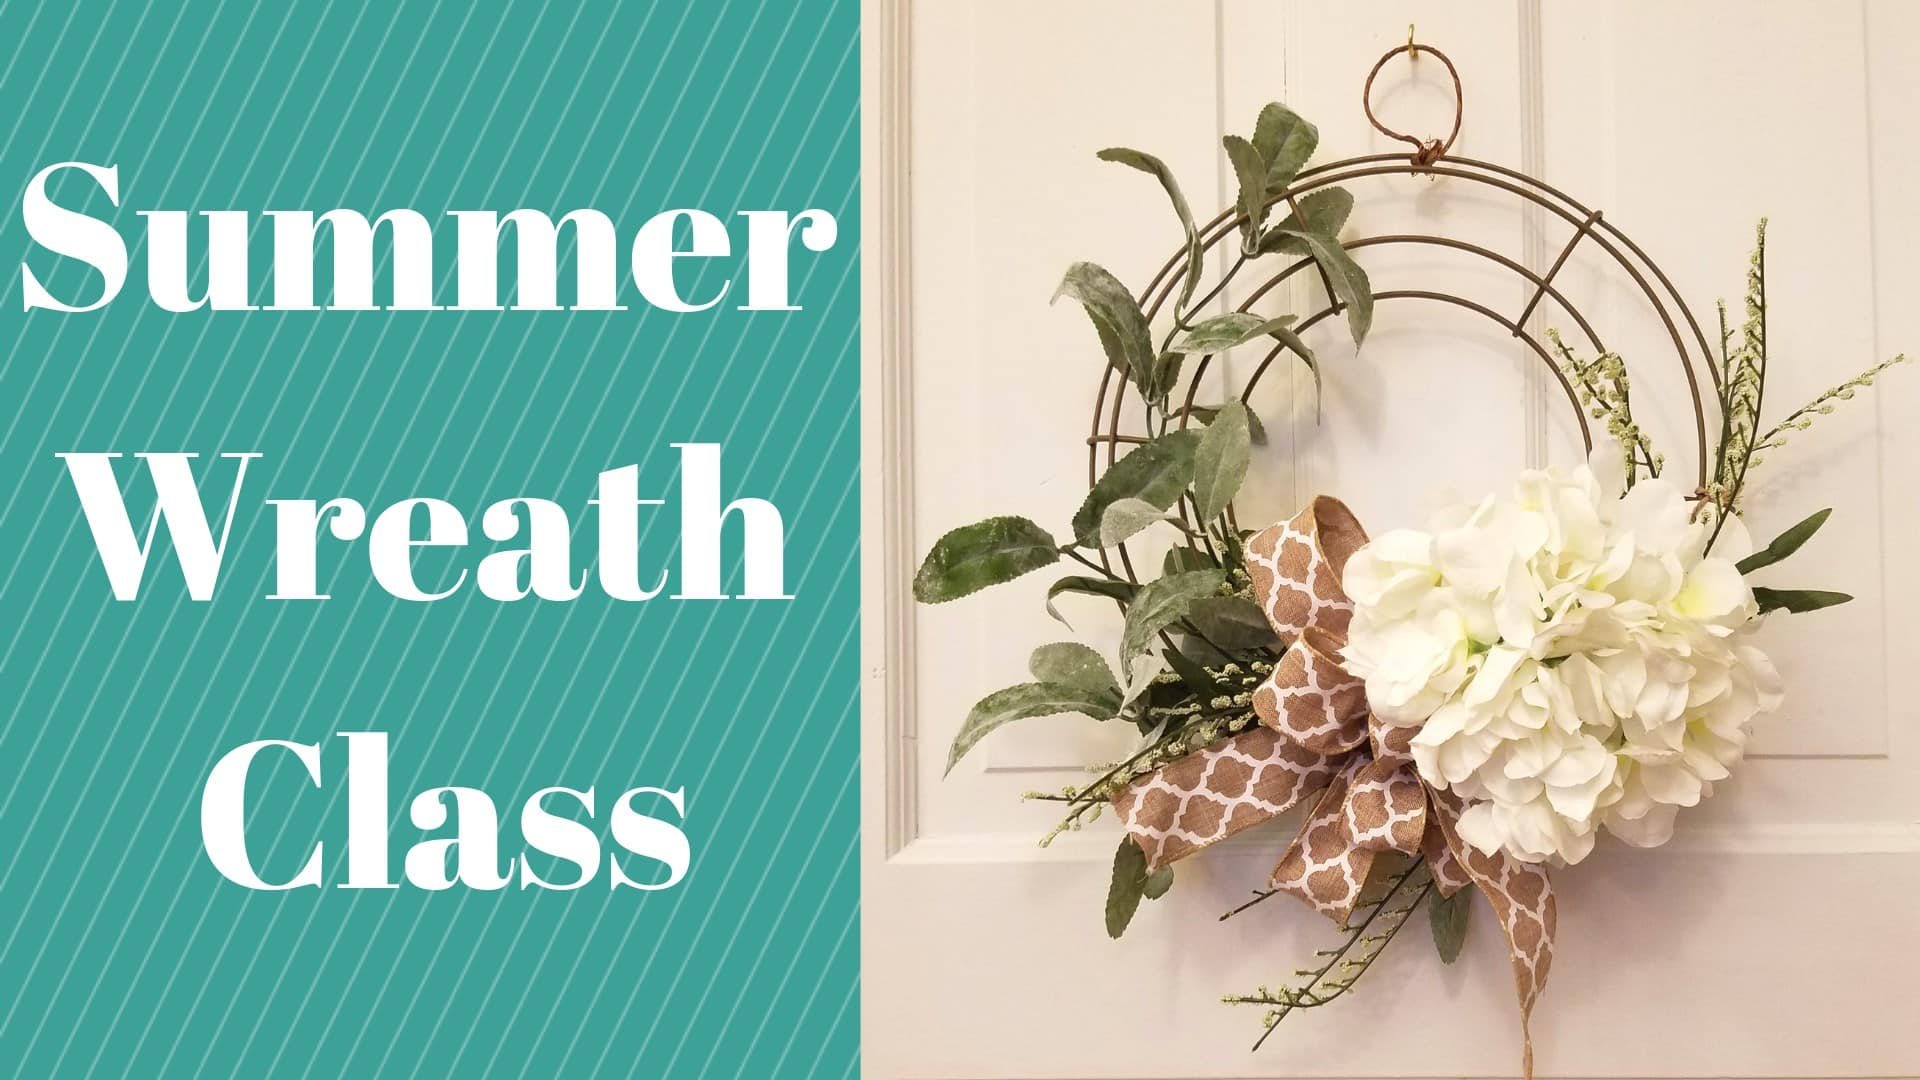 Summer Wreath Class Red Wing Artisan Collective Red Wing